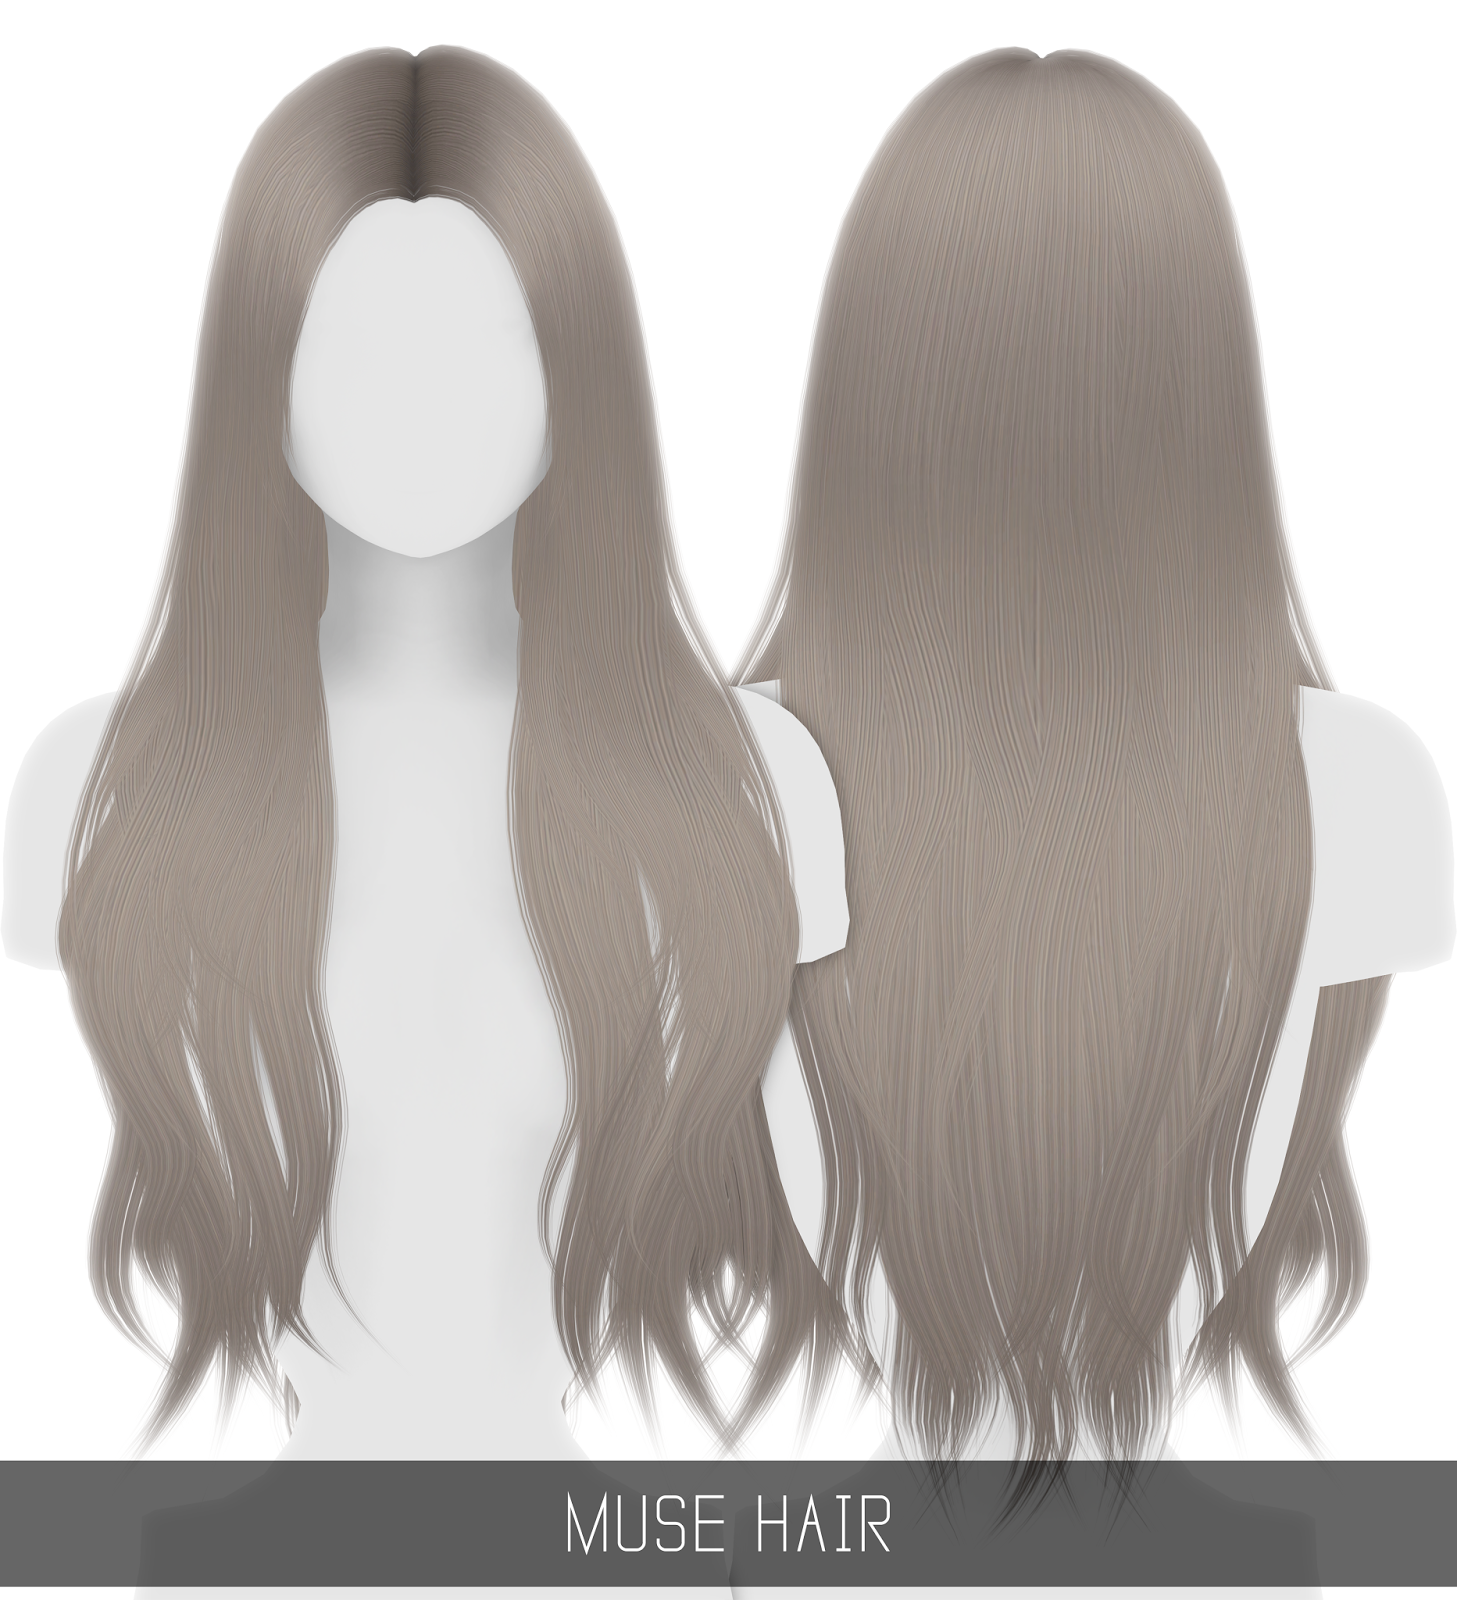 MUSE HAIR Sims 4 Pinterest